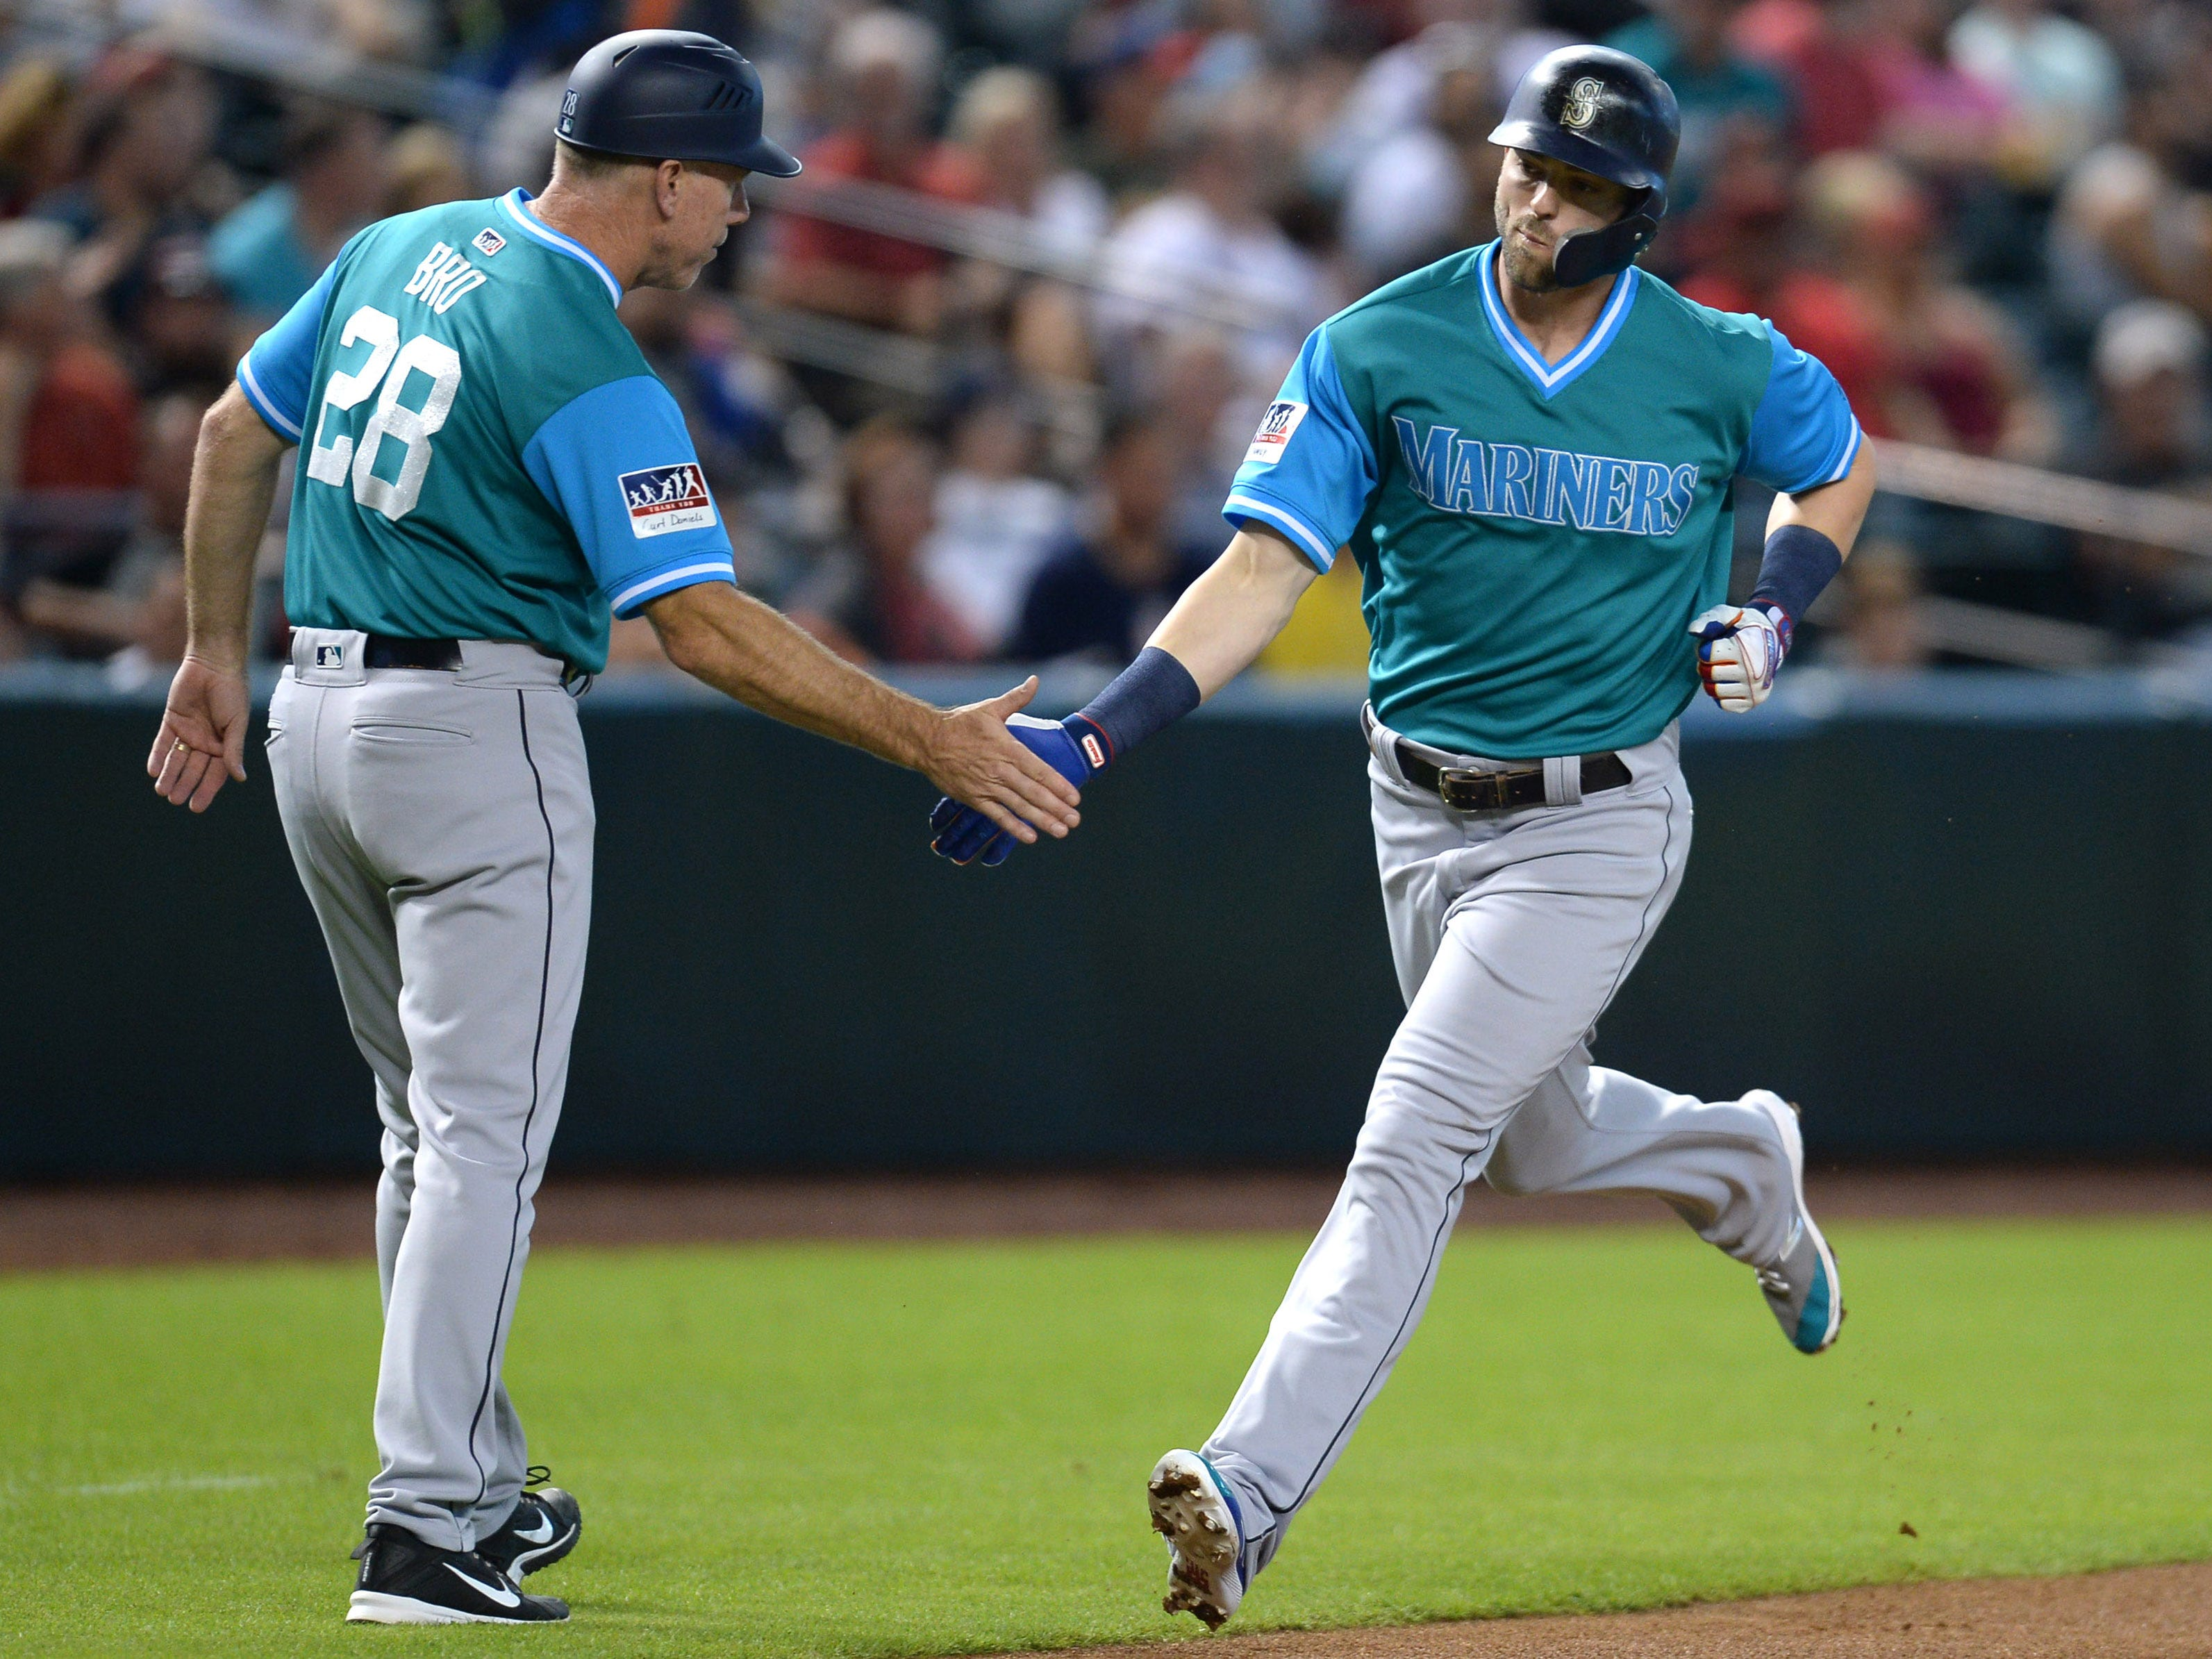 Aug 25, 2018; Phoenix, AZ, USA; Seattle Mariners right fielder Mitch Haniger (17) slaps hands with Seattle Mariners third base coach Scott Brosius (28) after hitting a solo home run against the Arizona Diamondbacks during the first inning at Chase Field. Mandatory Credit: Joe Camporeale-USA TODAY Sports